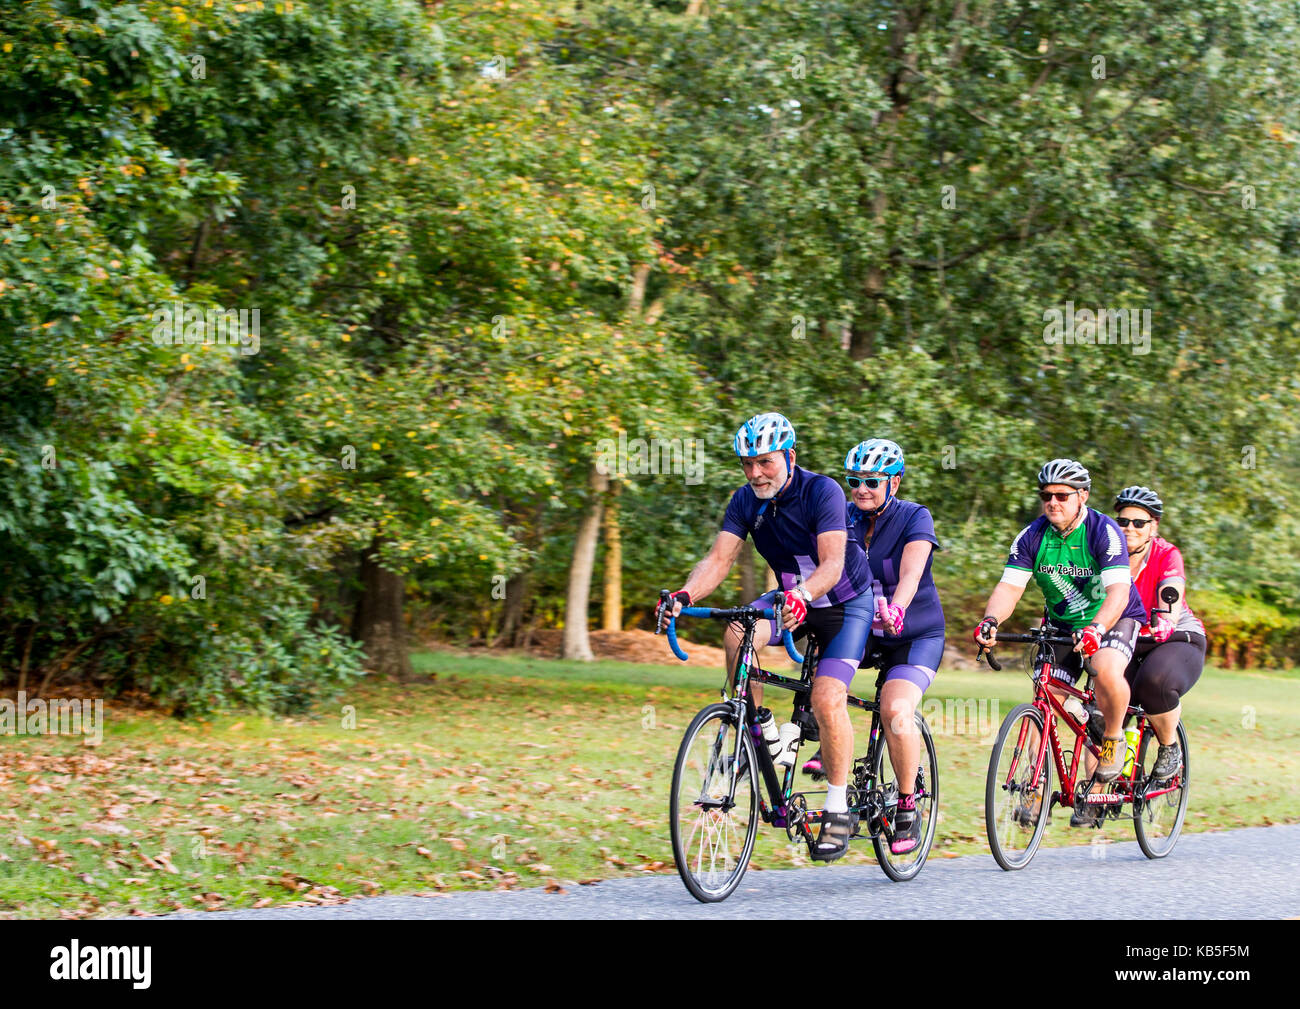 Tandem cyclists riding their bicycles - Stock Image